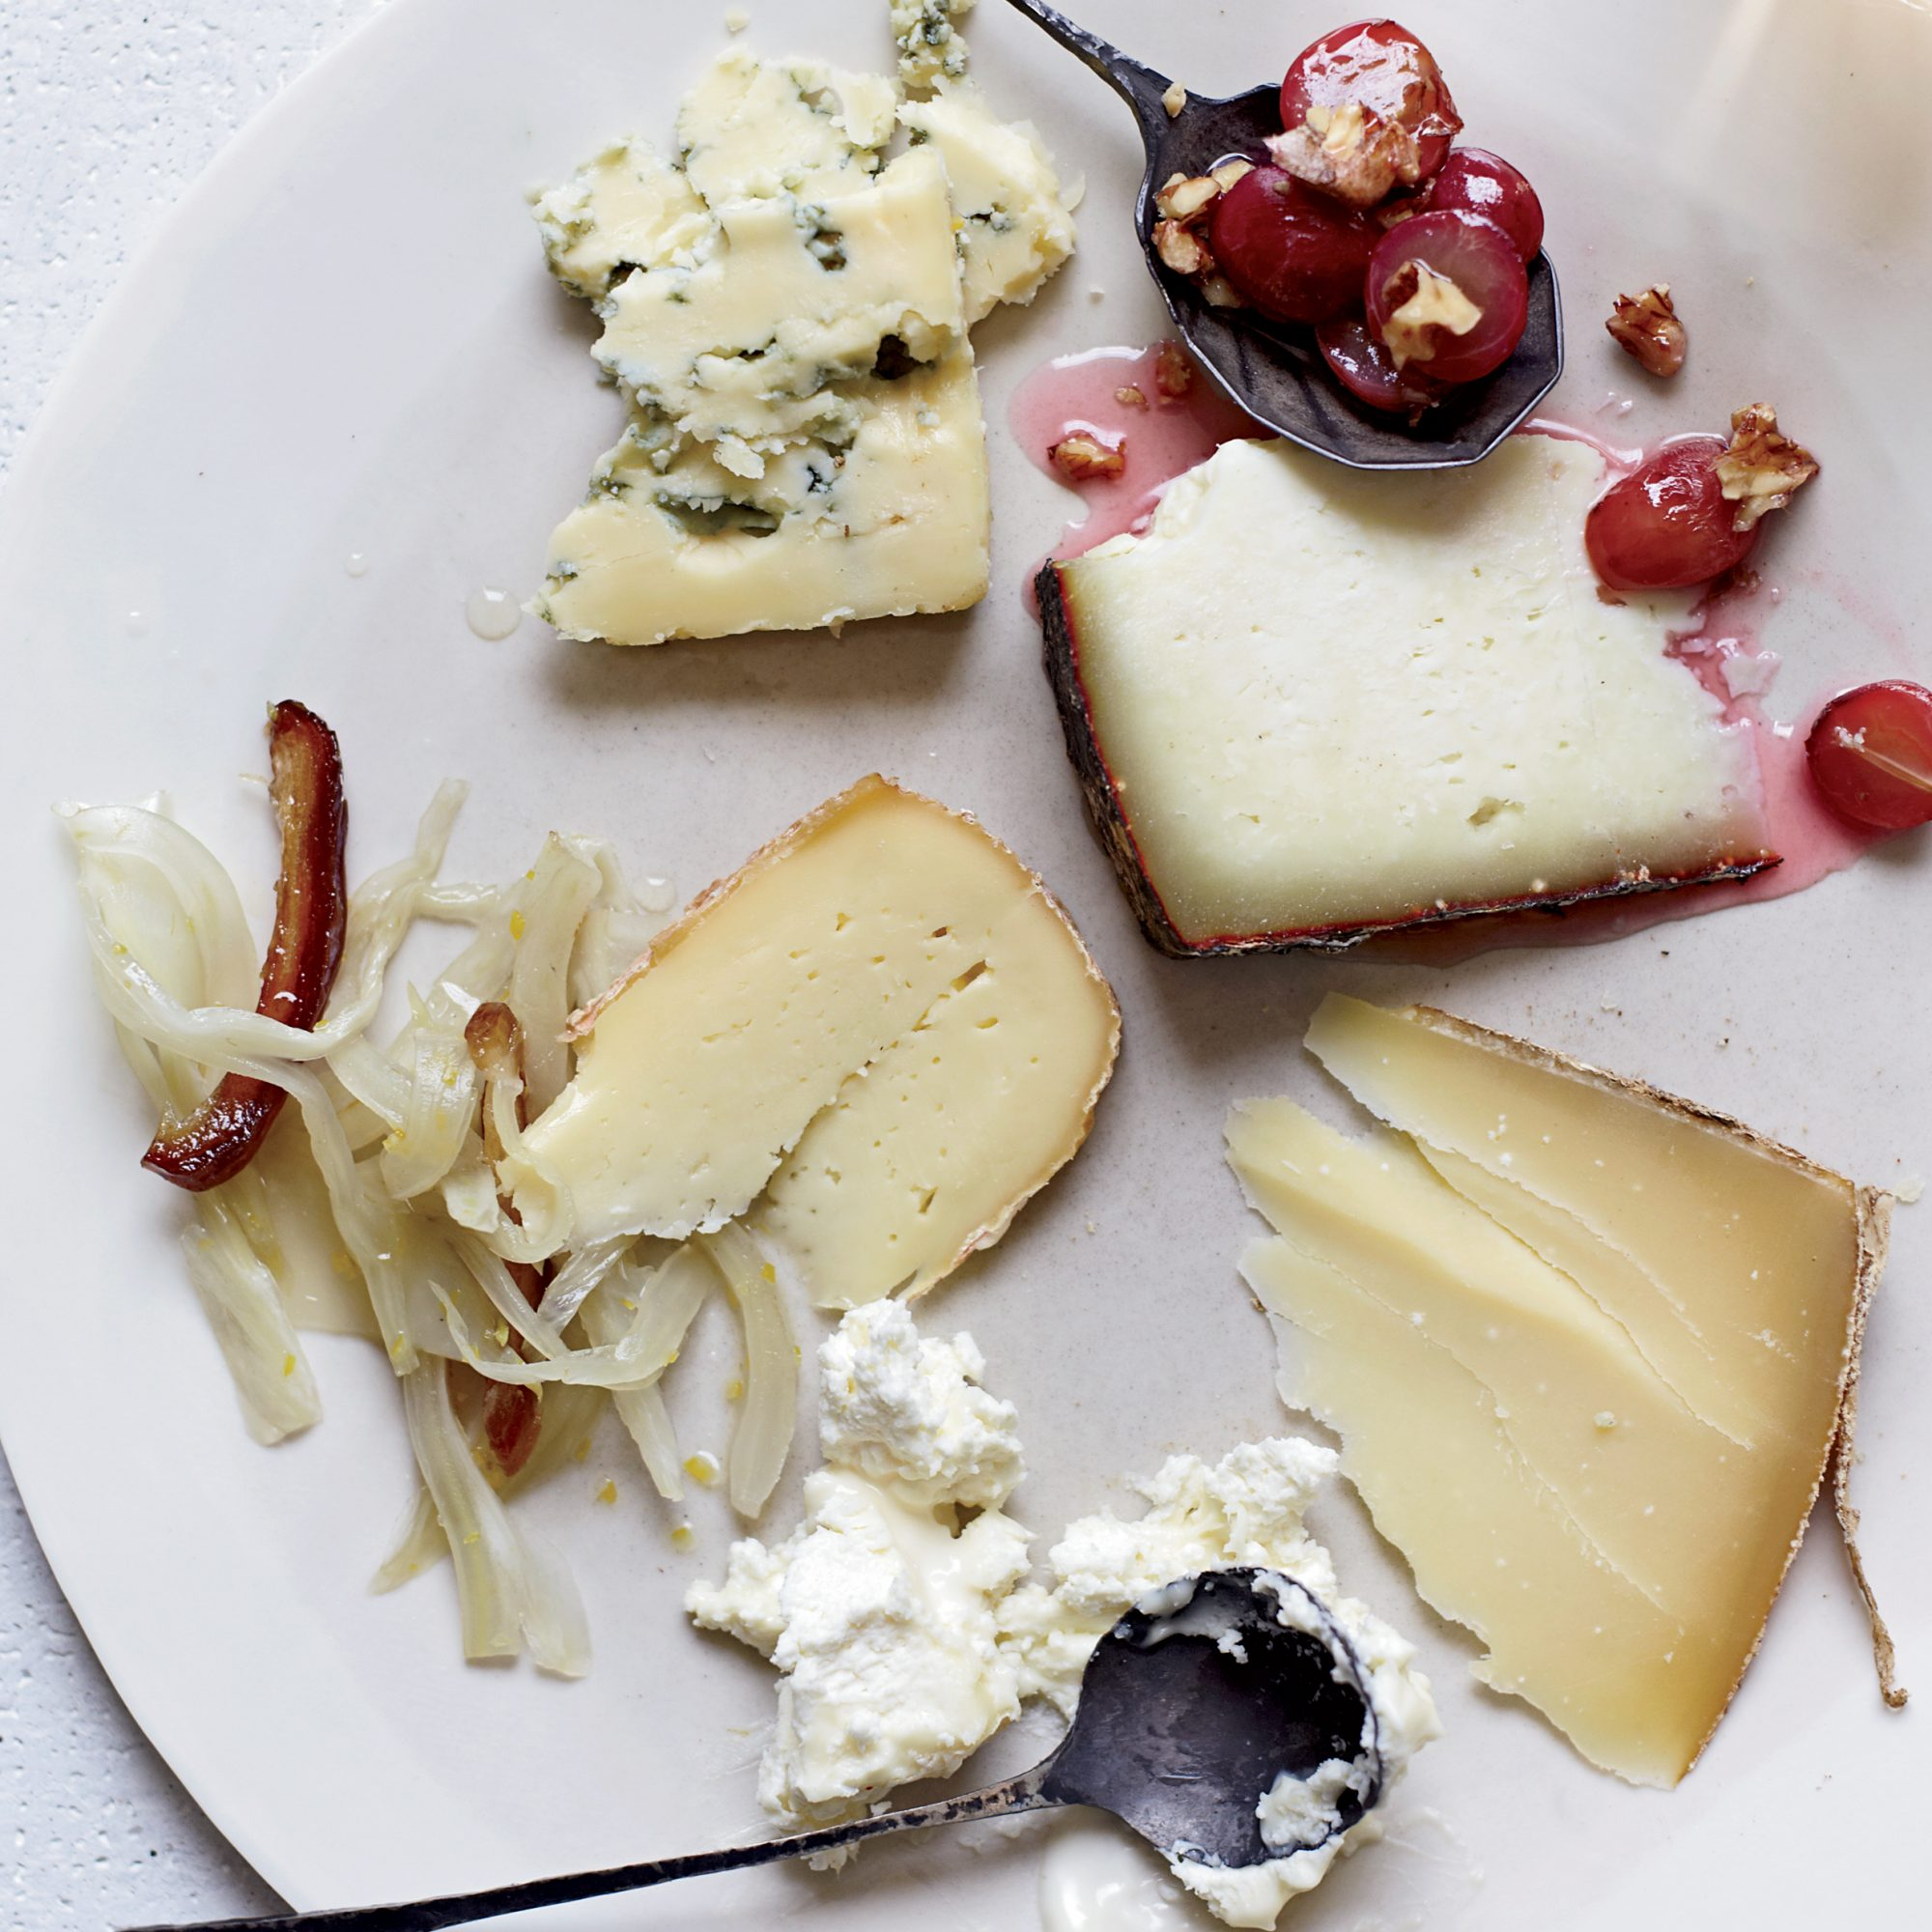 Summer Party Food: The Ideal Summer Cheese Plate